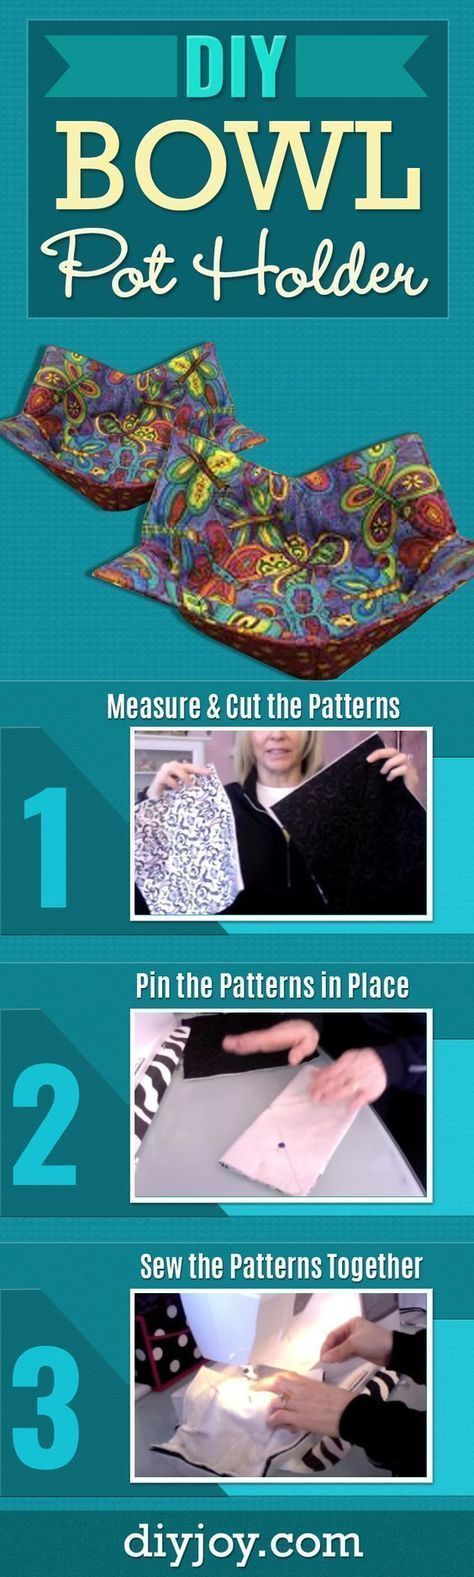 DIY Bowl Potholder – Easy Sewing Projects With Free Sewing Patterns ...